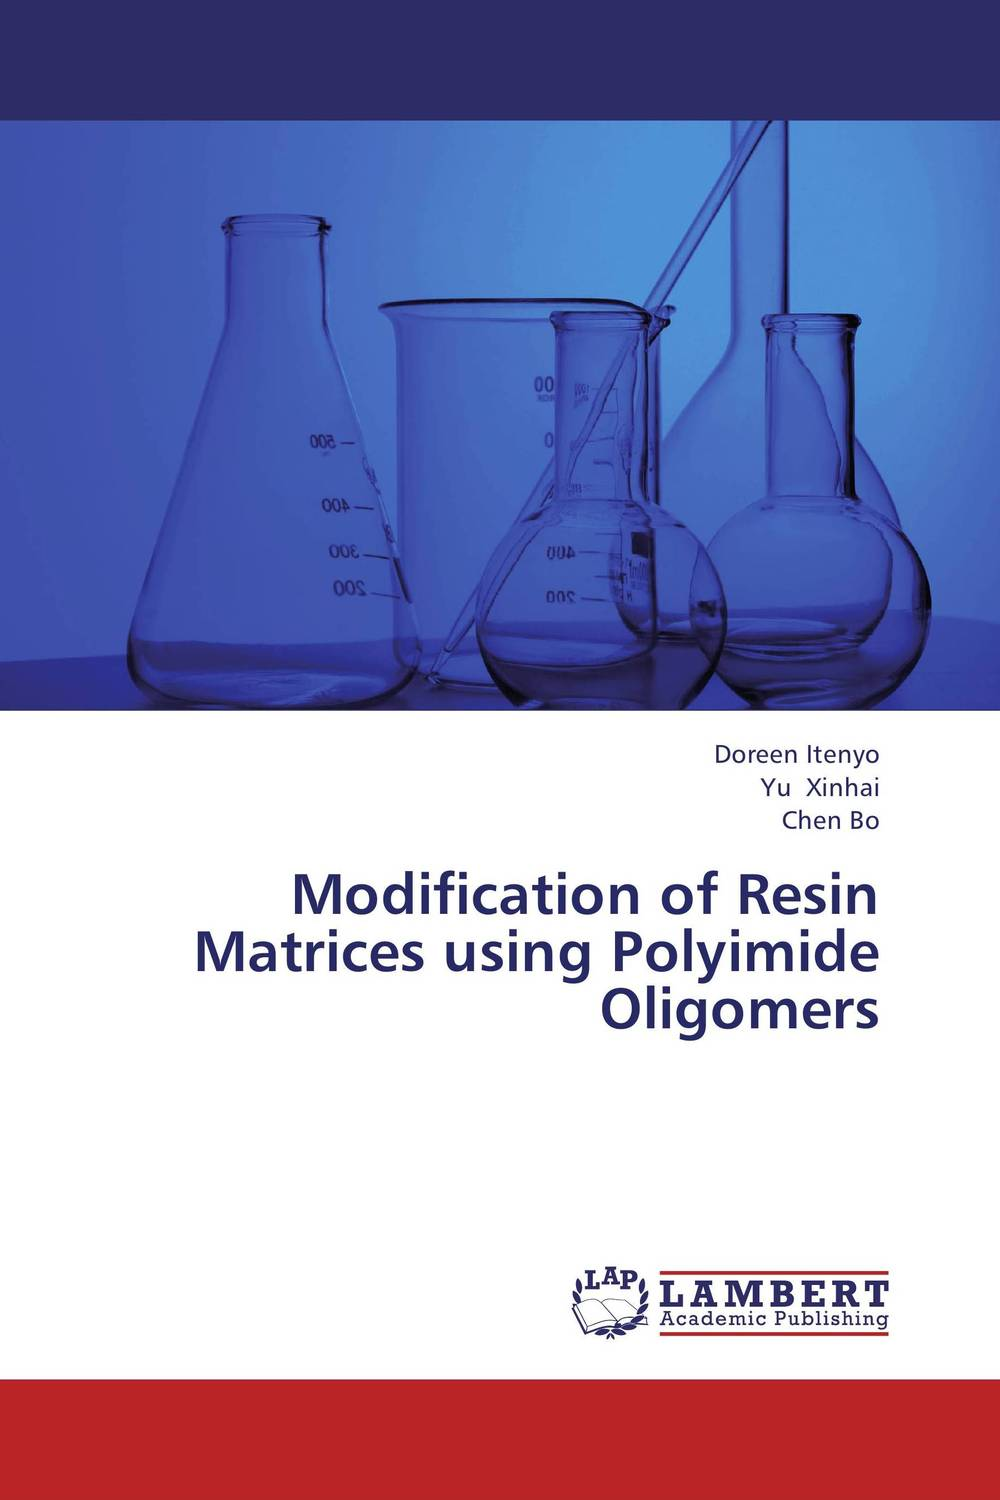 Modification of Resin Matrices using Polyimide Oligomers